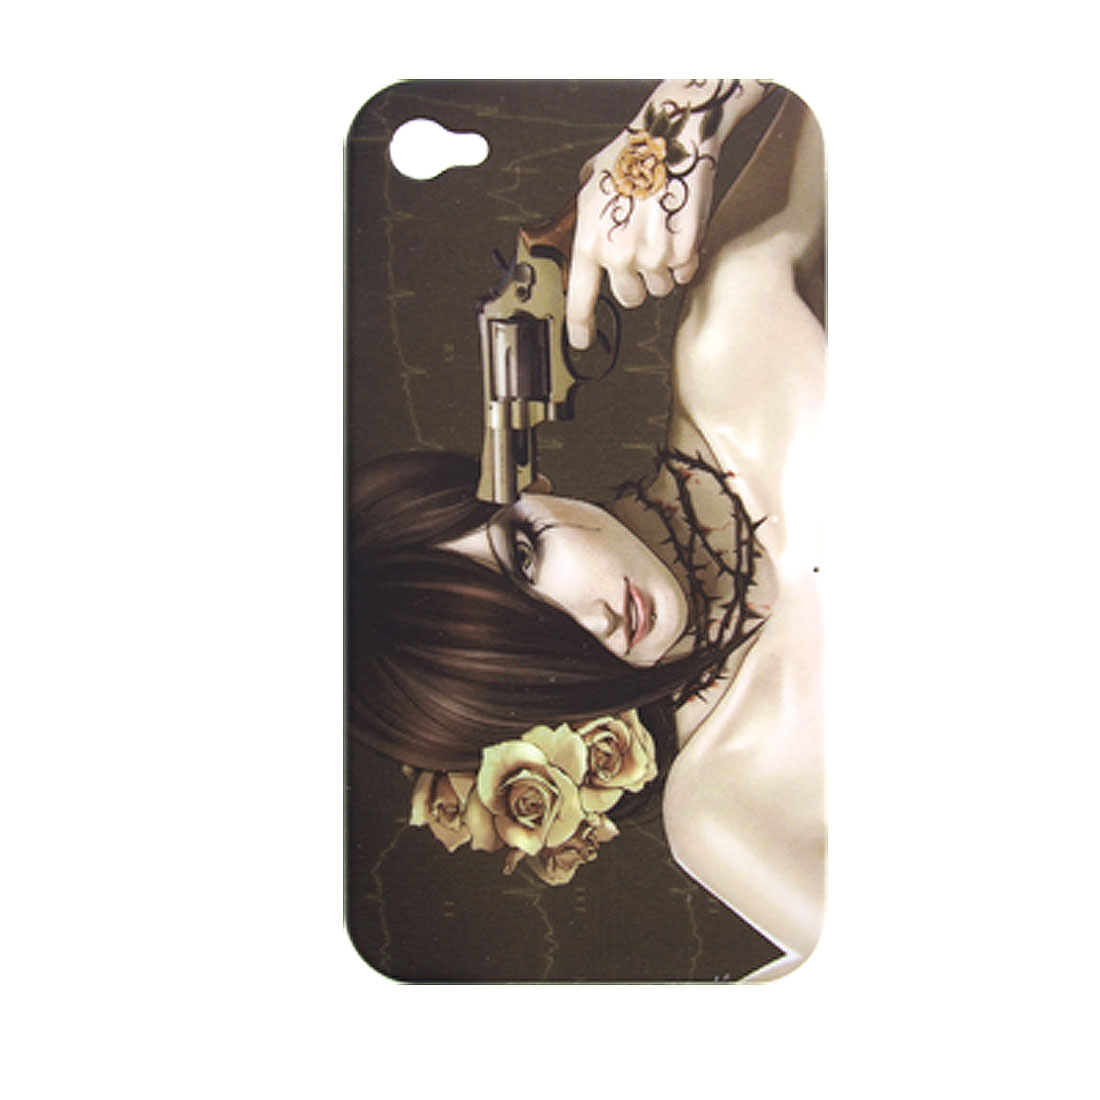 Girl w Gun Pattern Rubberized Plastic Case for iPhone 4 4G